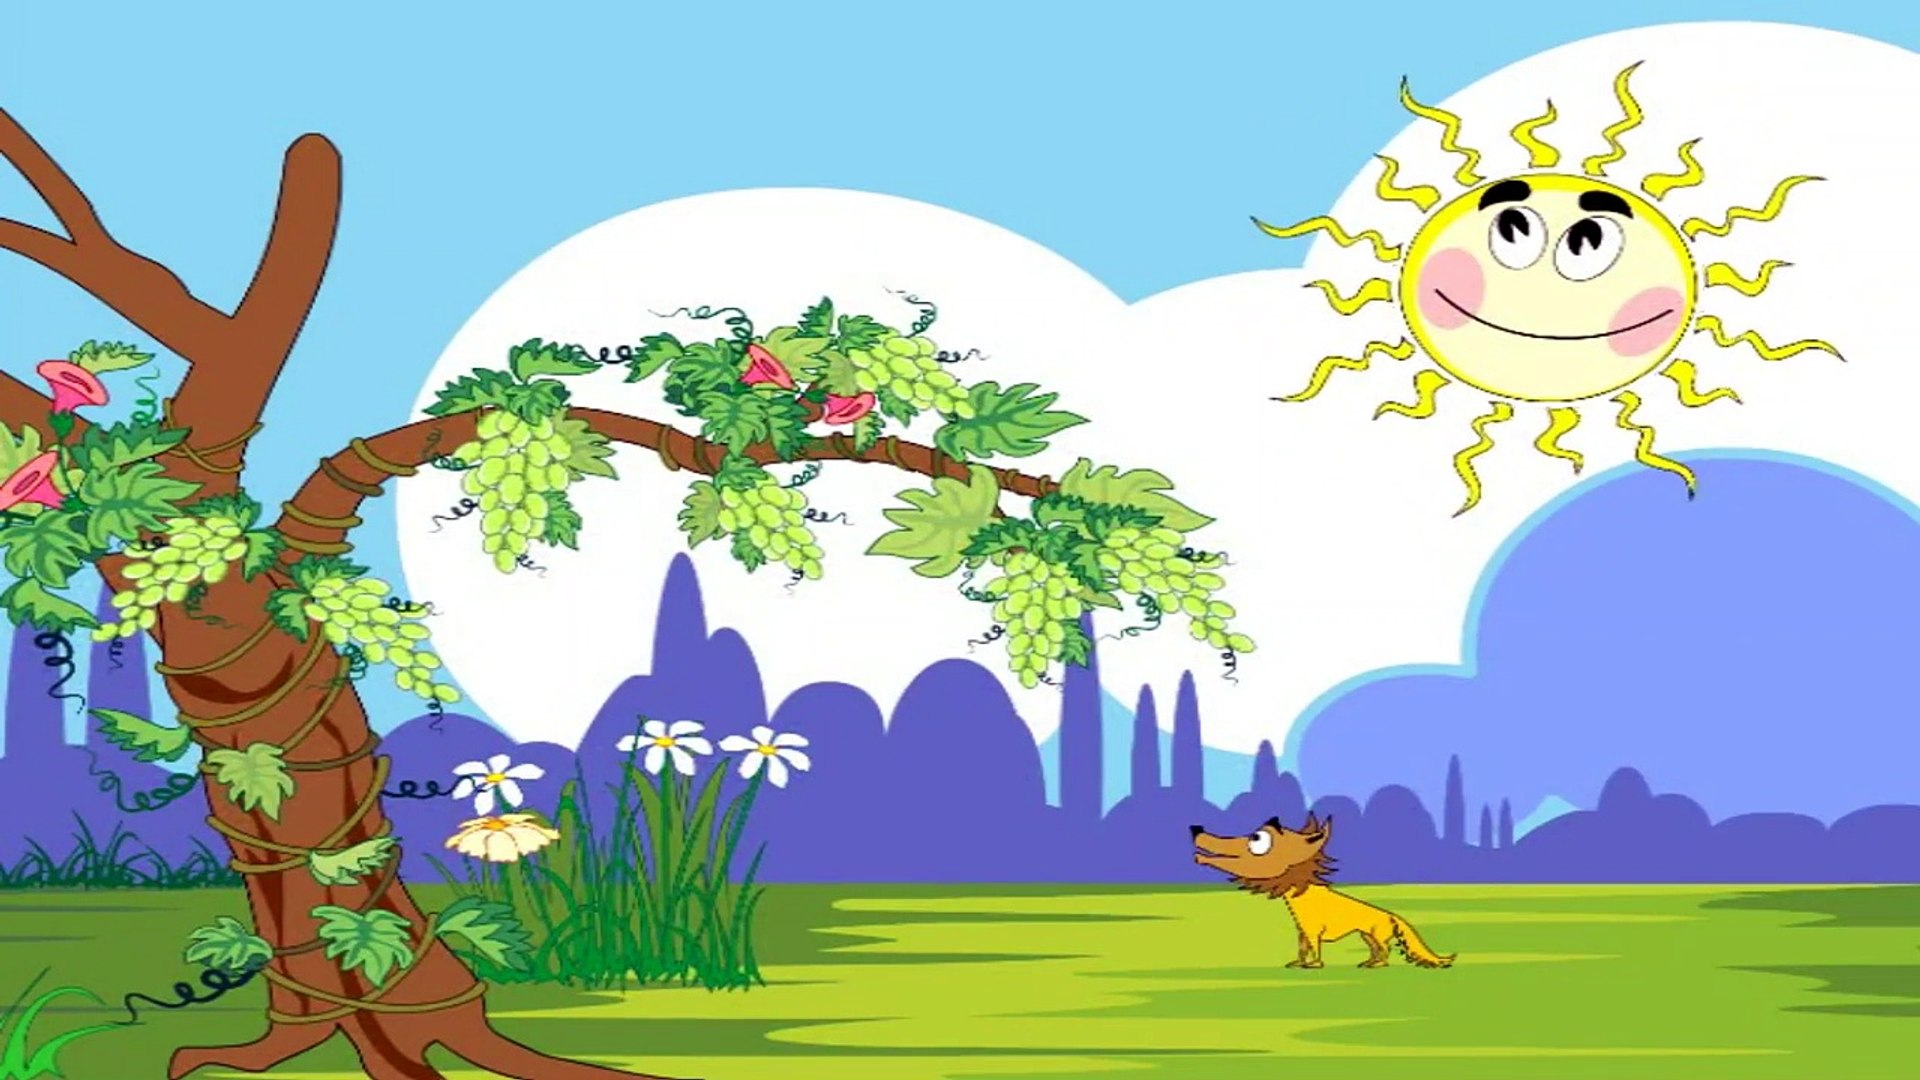 Moral Stories ## Compiled Short Stories In English - Kids Education